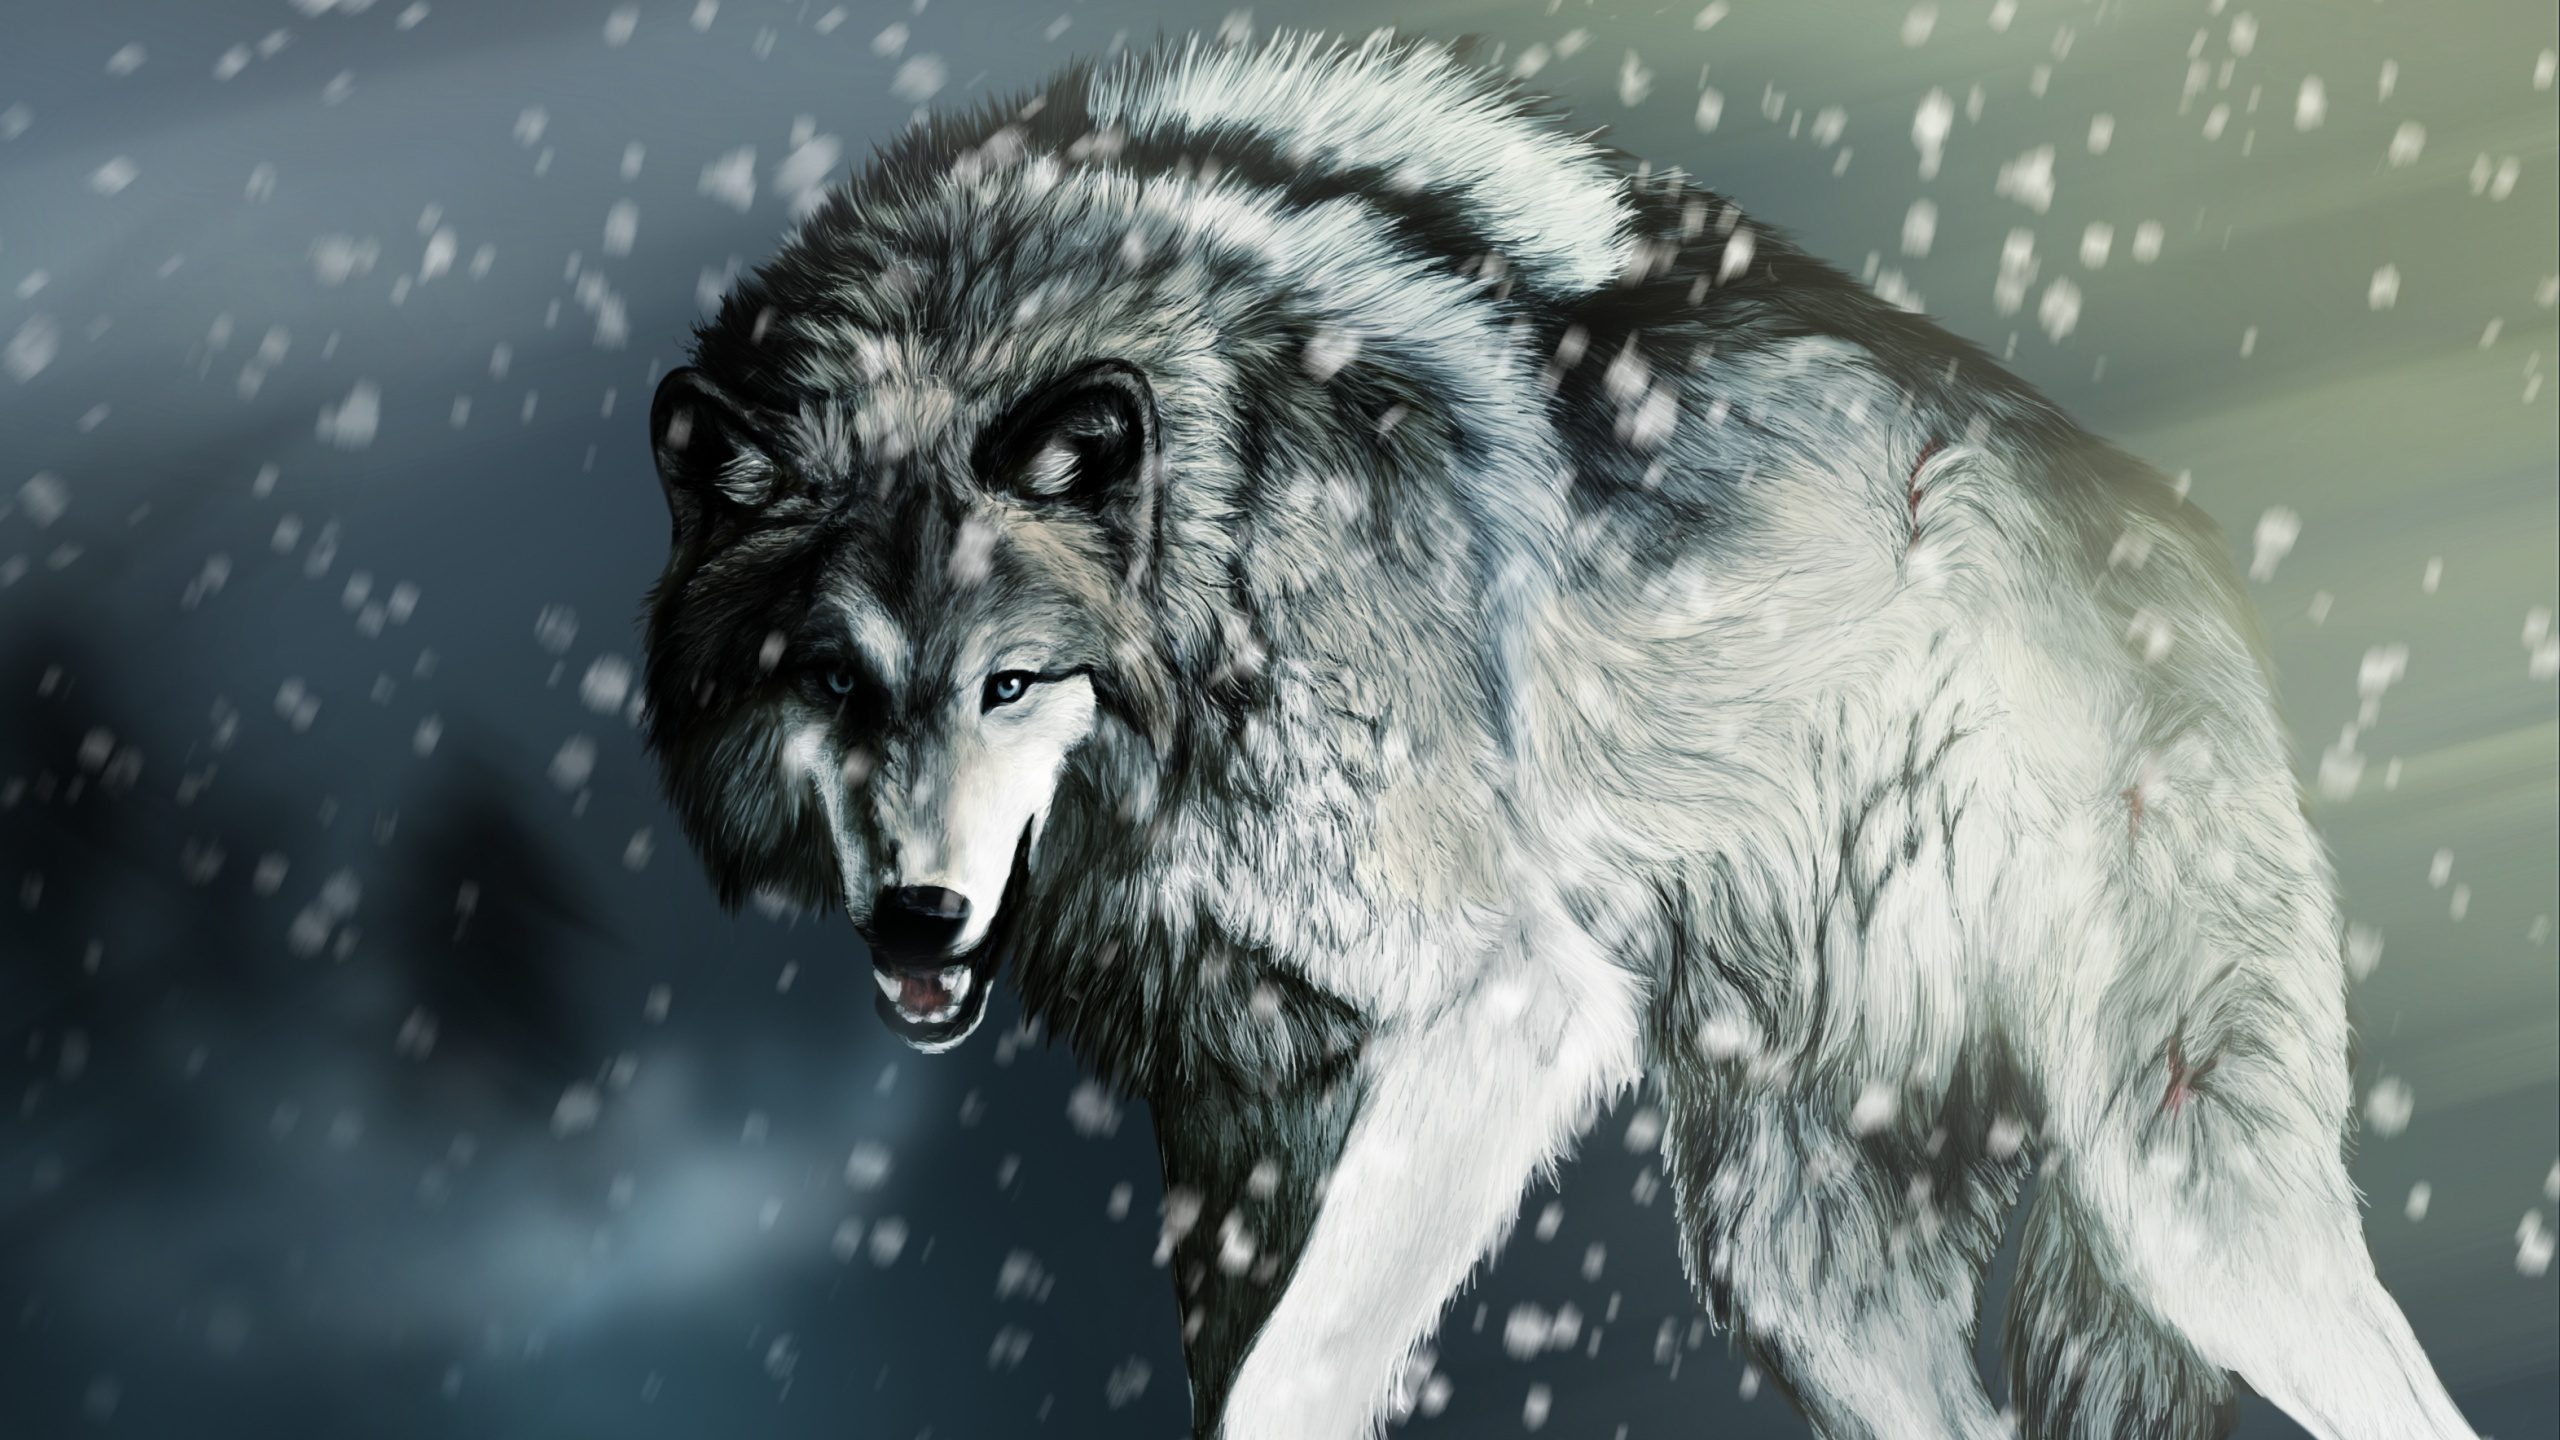 Falling Snow Wallpaper Iphone Wallpaper Wounded Wolf In The Winter 2560x1600 Hd Picture